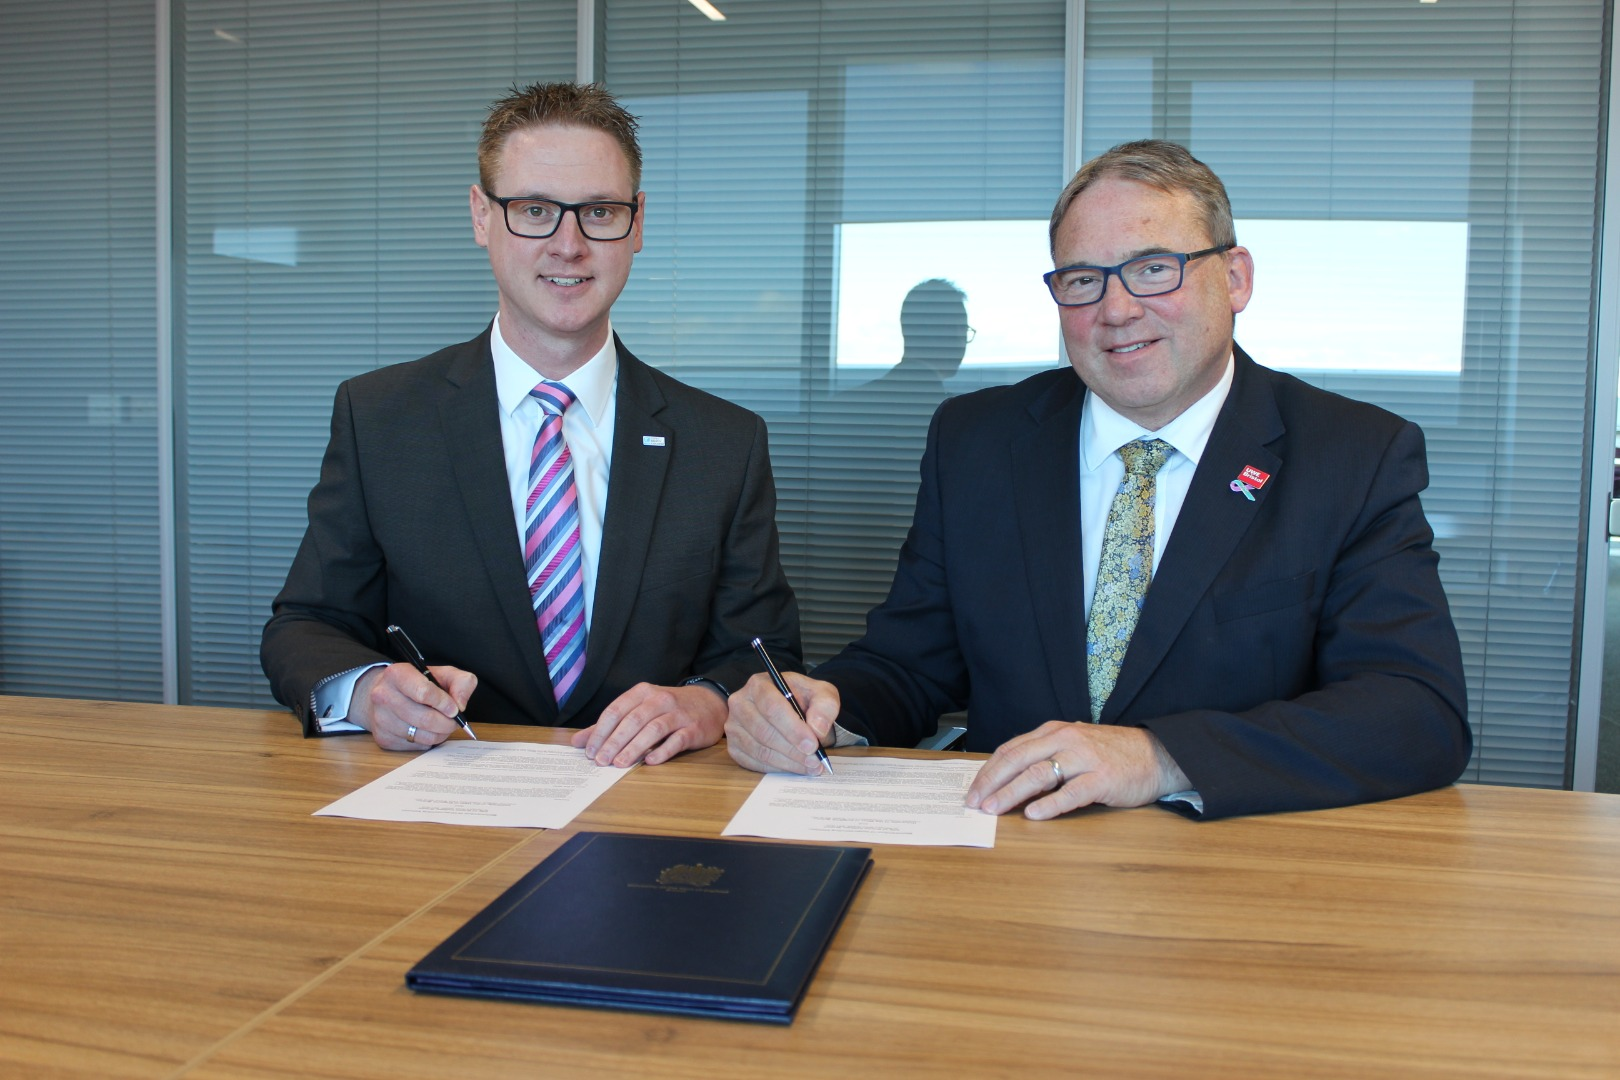 Professor Steve West, Vice-Chancellor of the University of the West of England, and Lee Probert, Principal and Chief Executive at City of Bristol College, sign documents